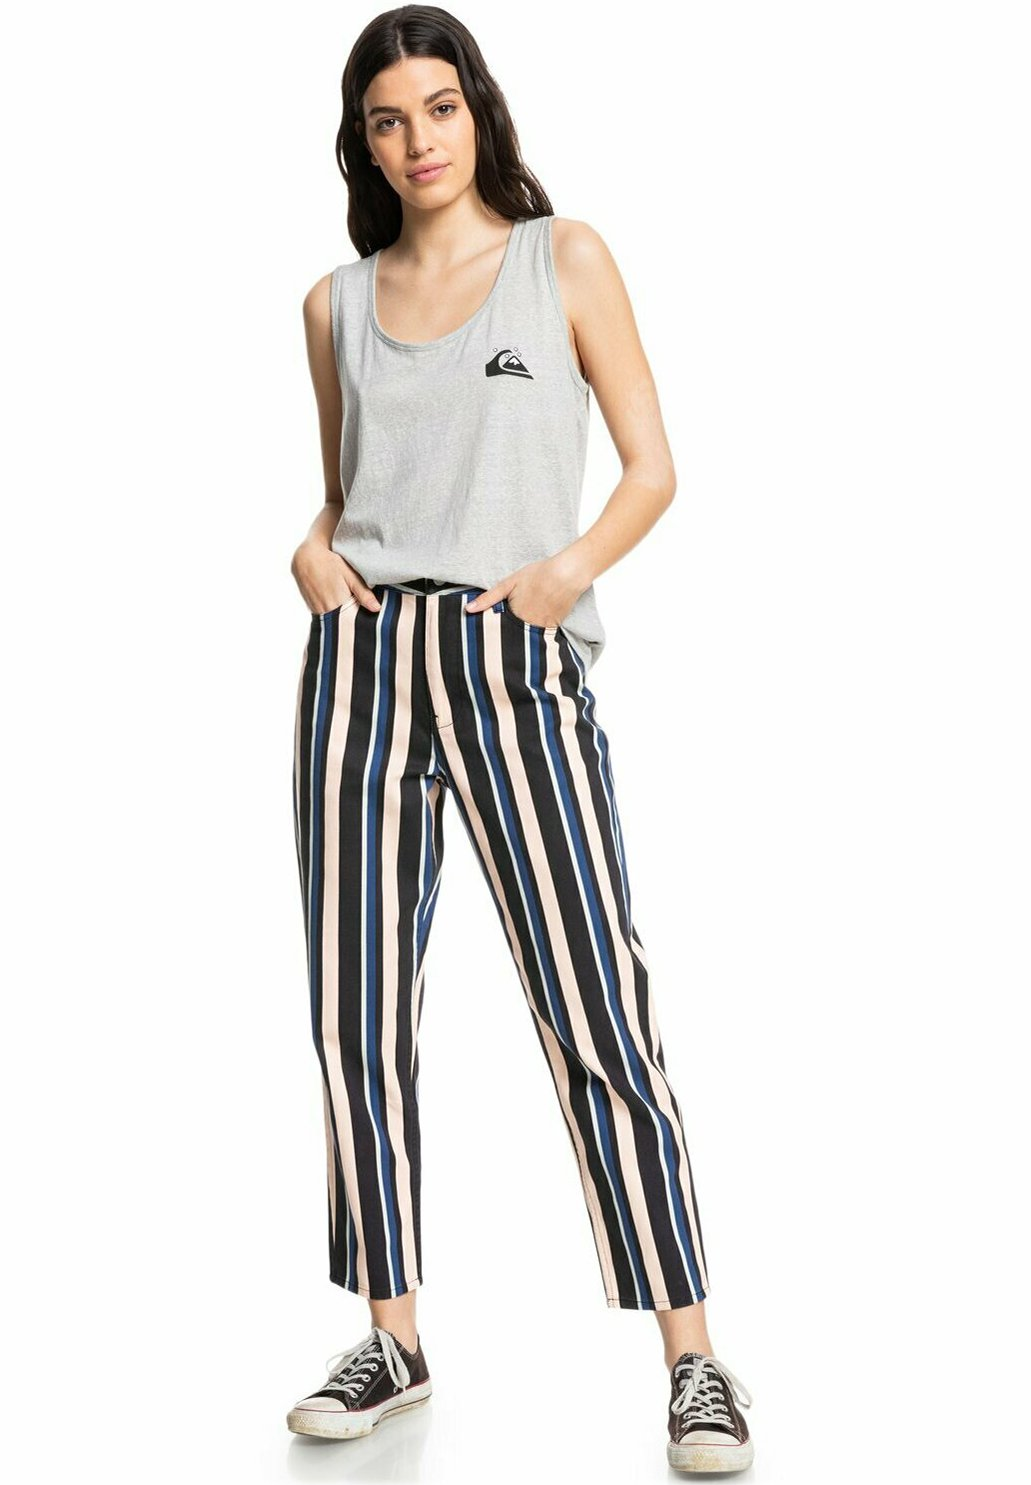 Femme DREAM IS ON - MIT MOM - Pantalons outdoor